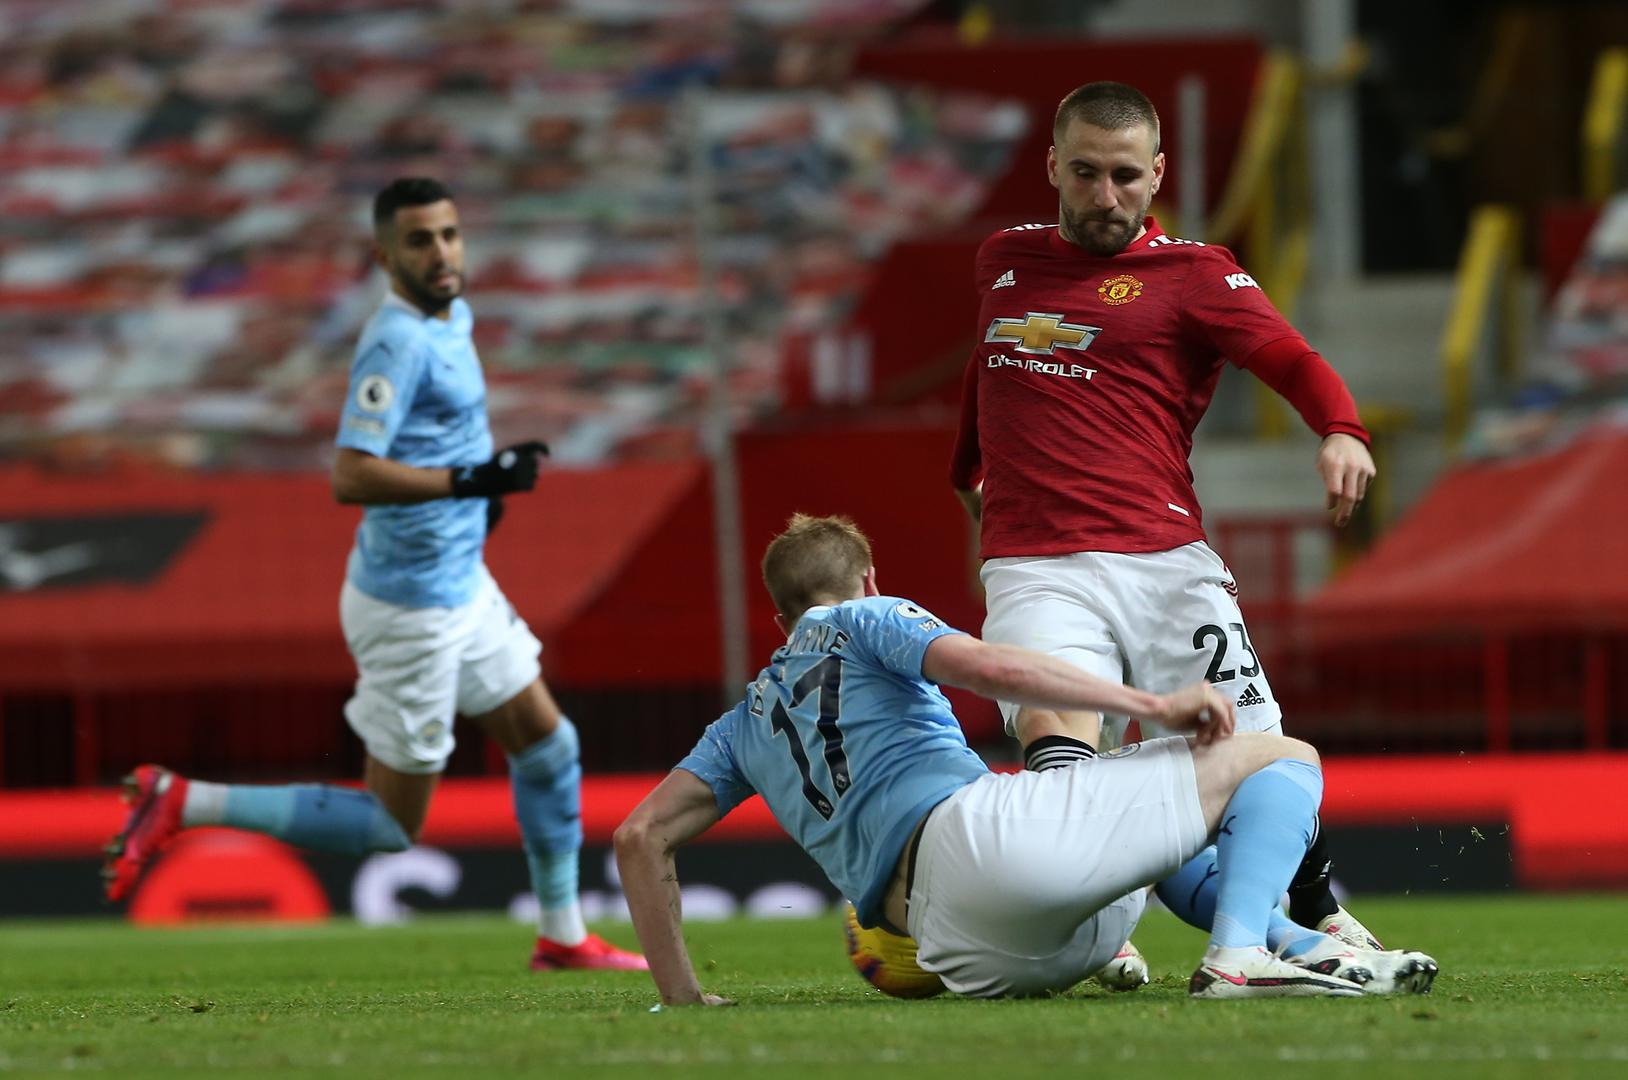 Luke Shaw in action against City in the Manchester derby,